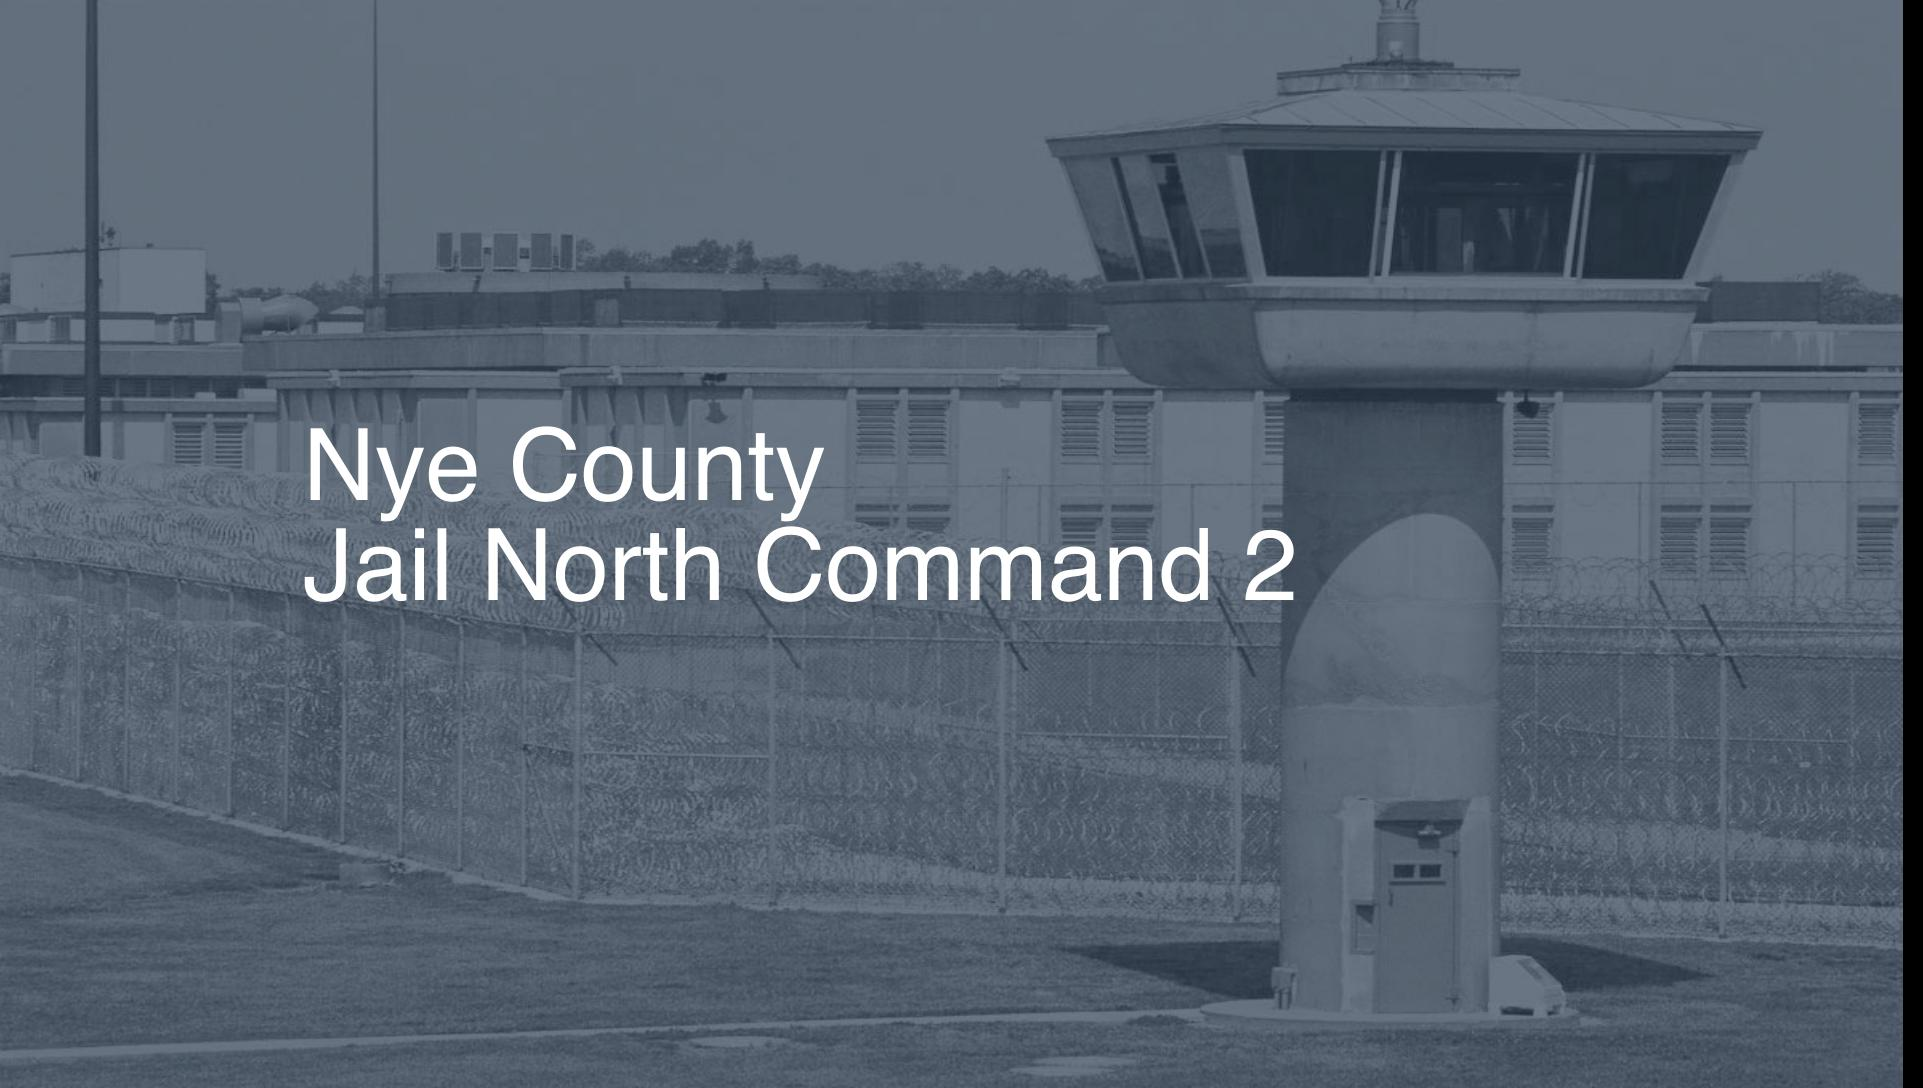 Nye County Jail - North Command Inmate Search, Lookup